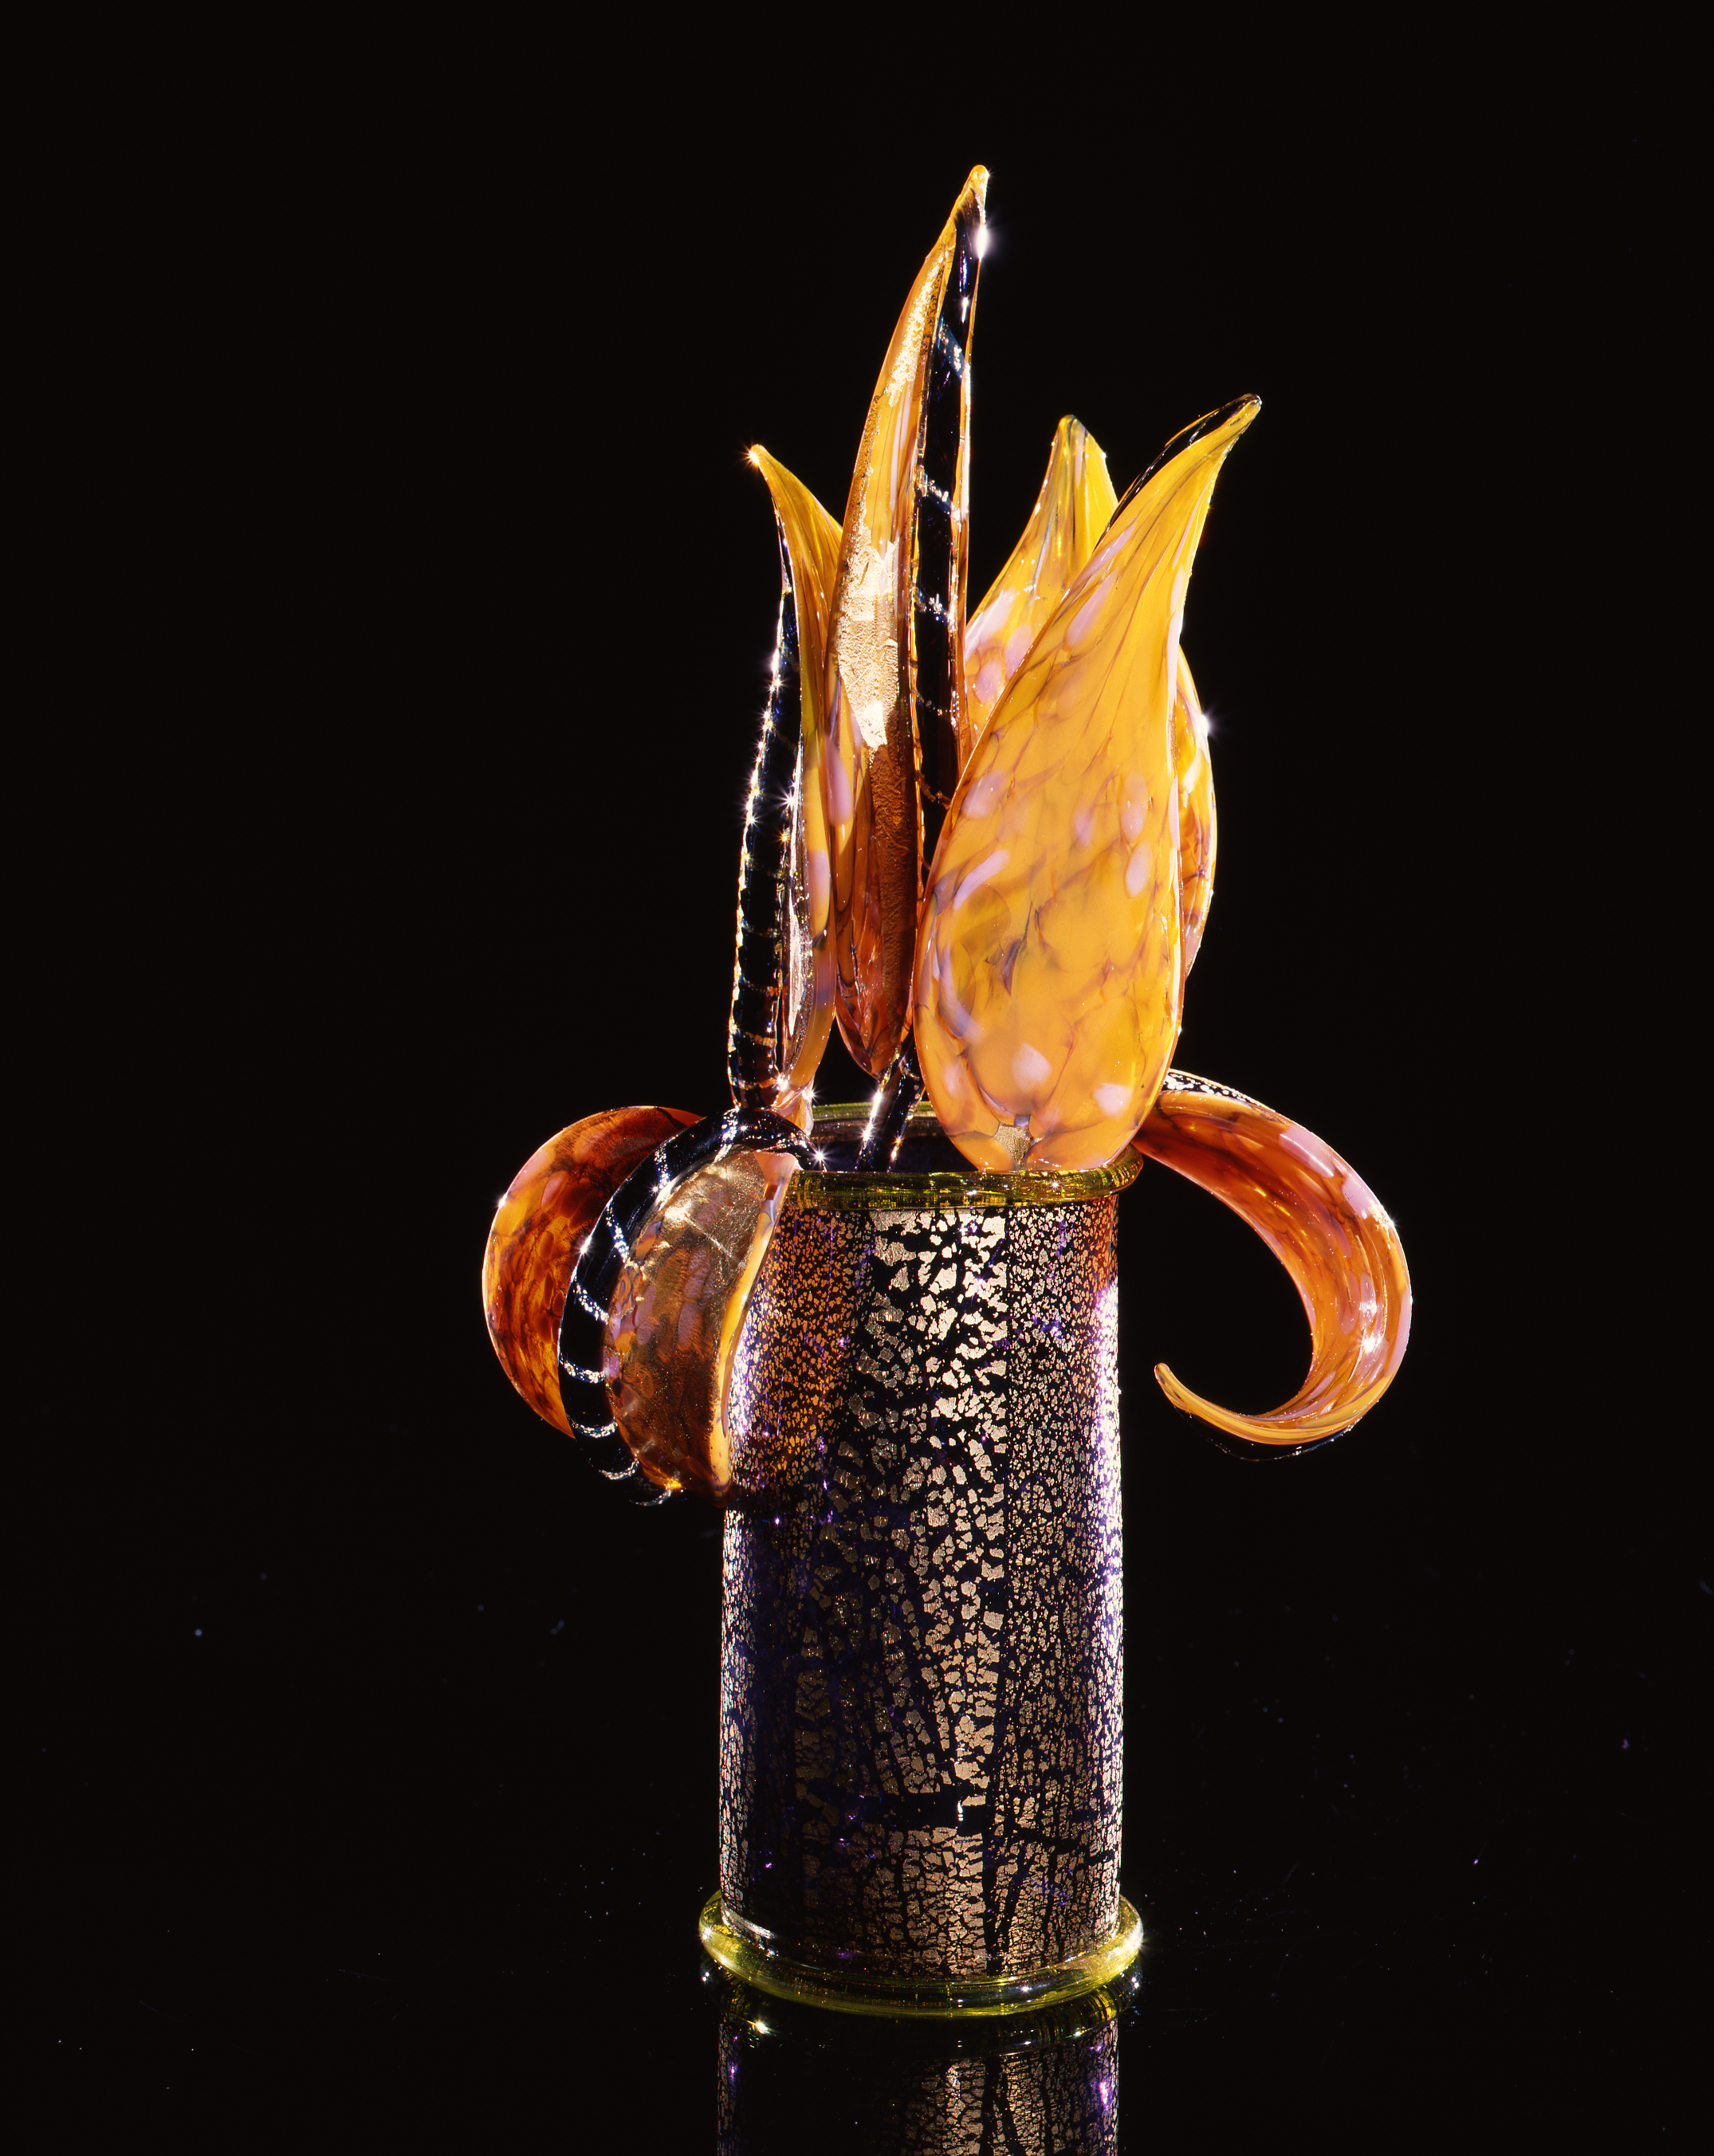 Dale Chihuly,  Gilded Violet Piccolo Venetian with Yellow Leaves  (1993, glass, 14 x 3 x 8 inches)